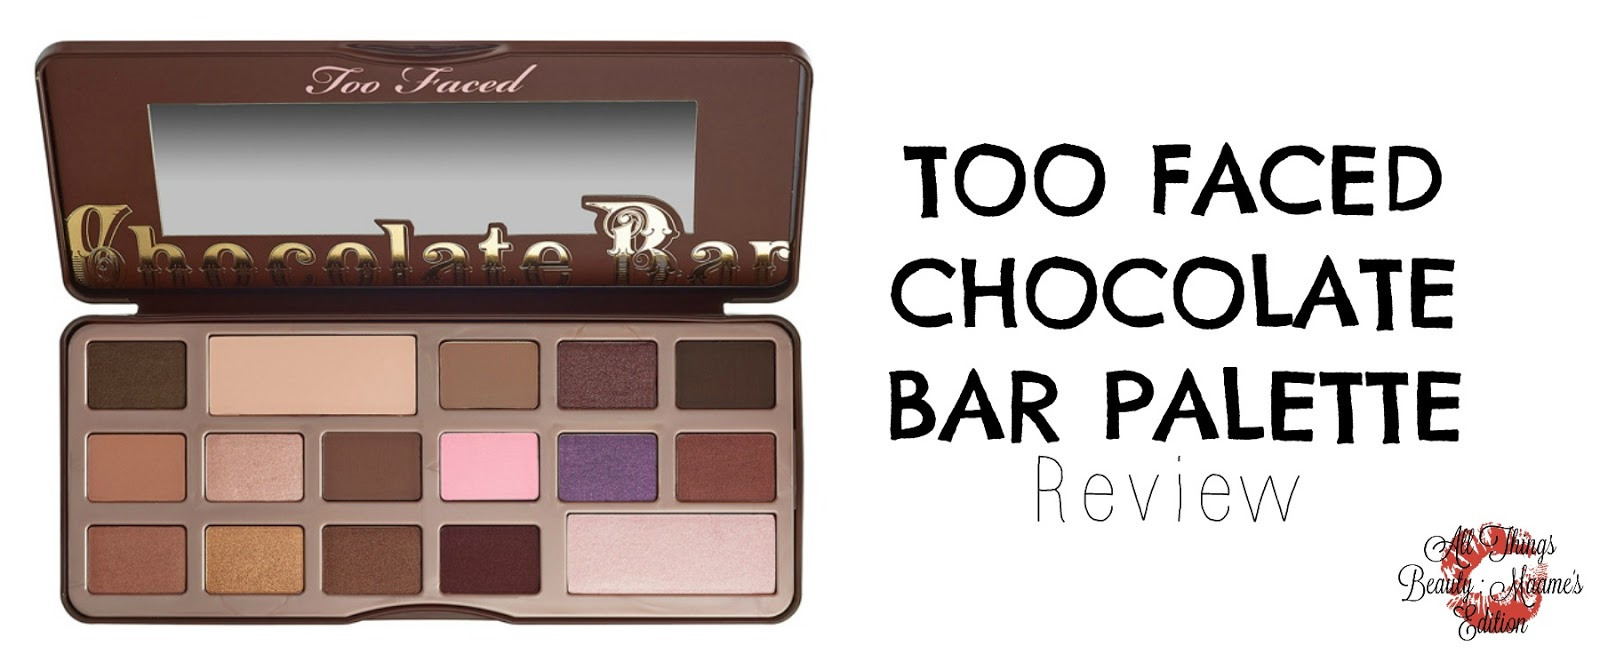 Too Faced Chocolate Bar Palette Review - All Things Beauty ...